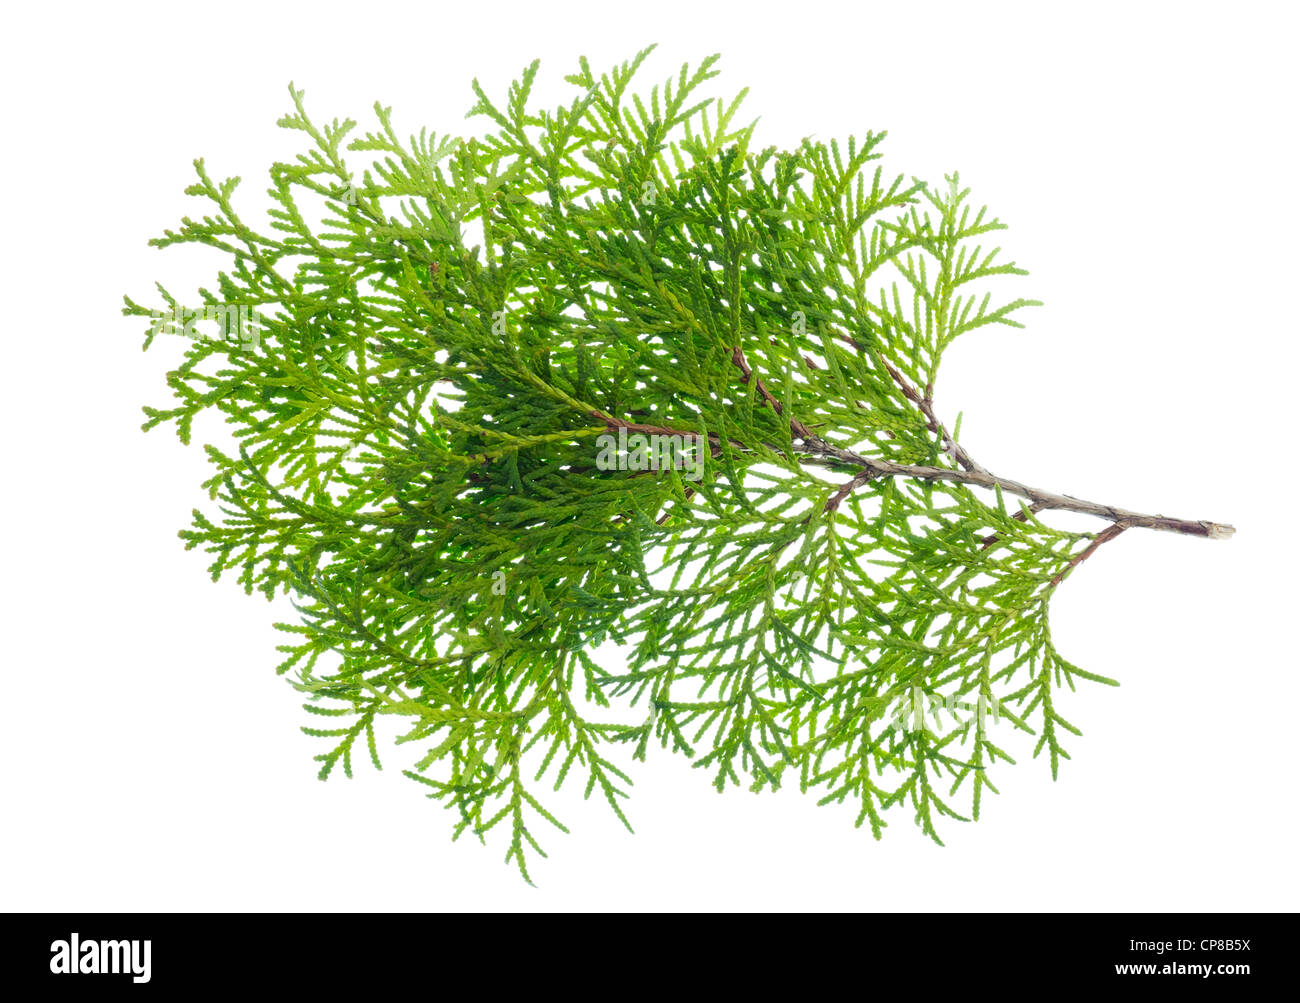 Young sapling of evergreen thuja isolated on white texture background. - Stock Image